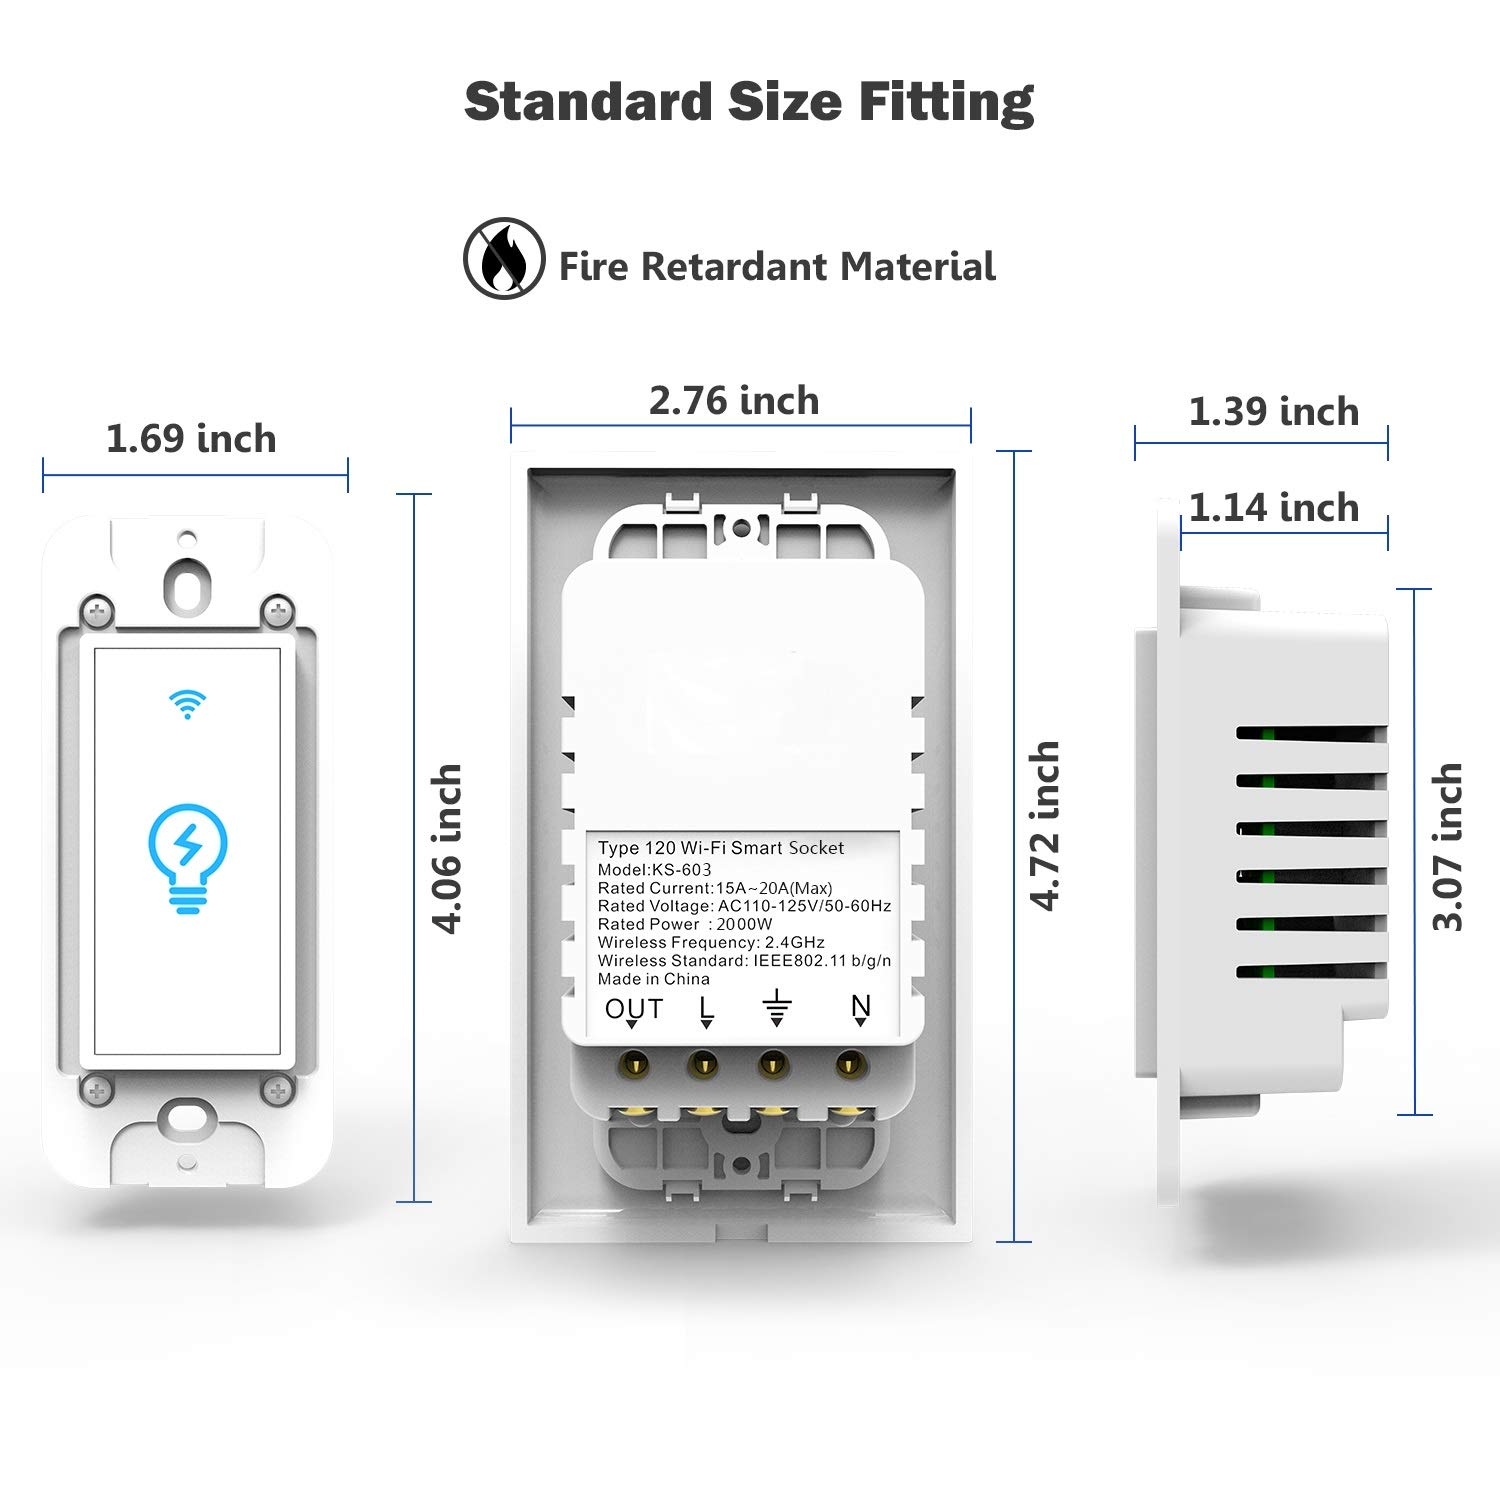 Smart Switch Works With Alexa In Wall Light Mobile Phone App 3 Way Wiring Diagram Basic Circuit Breaker Sizing Iphone Remote Control Sensitive Touch Wireless